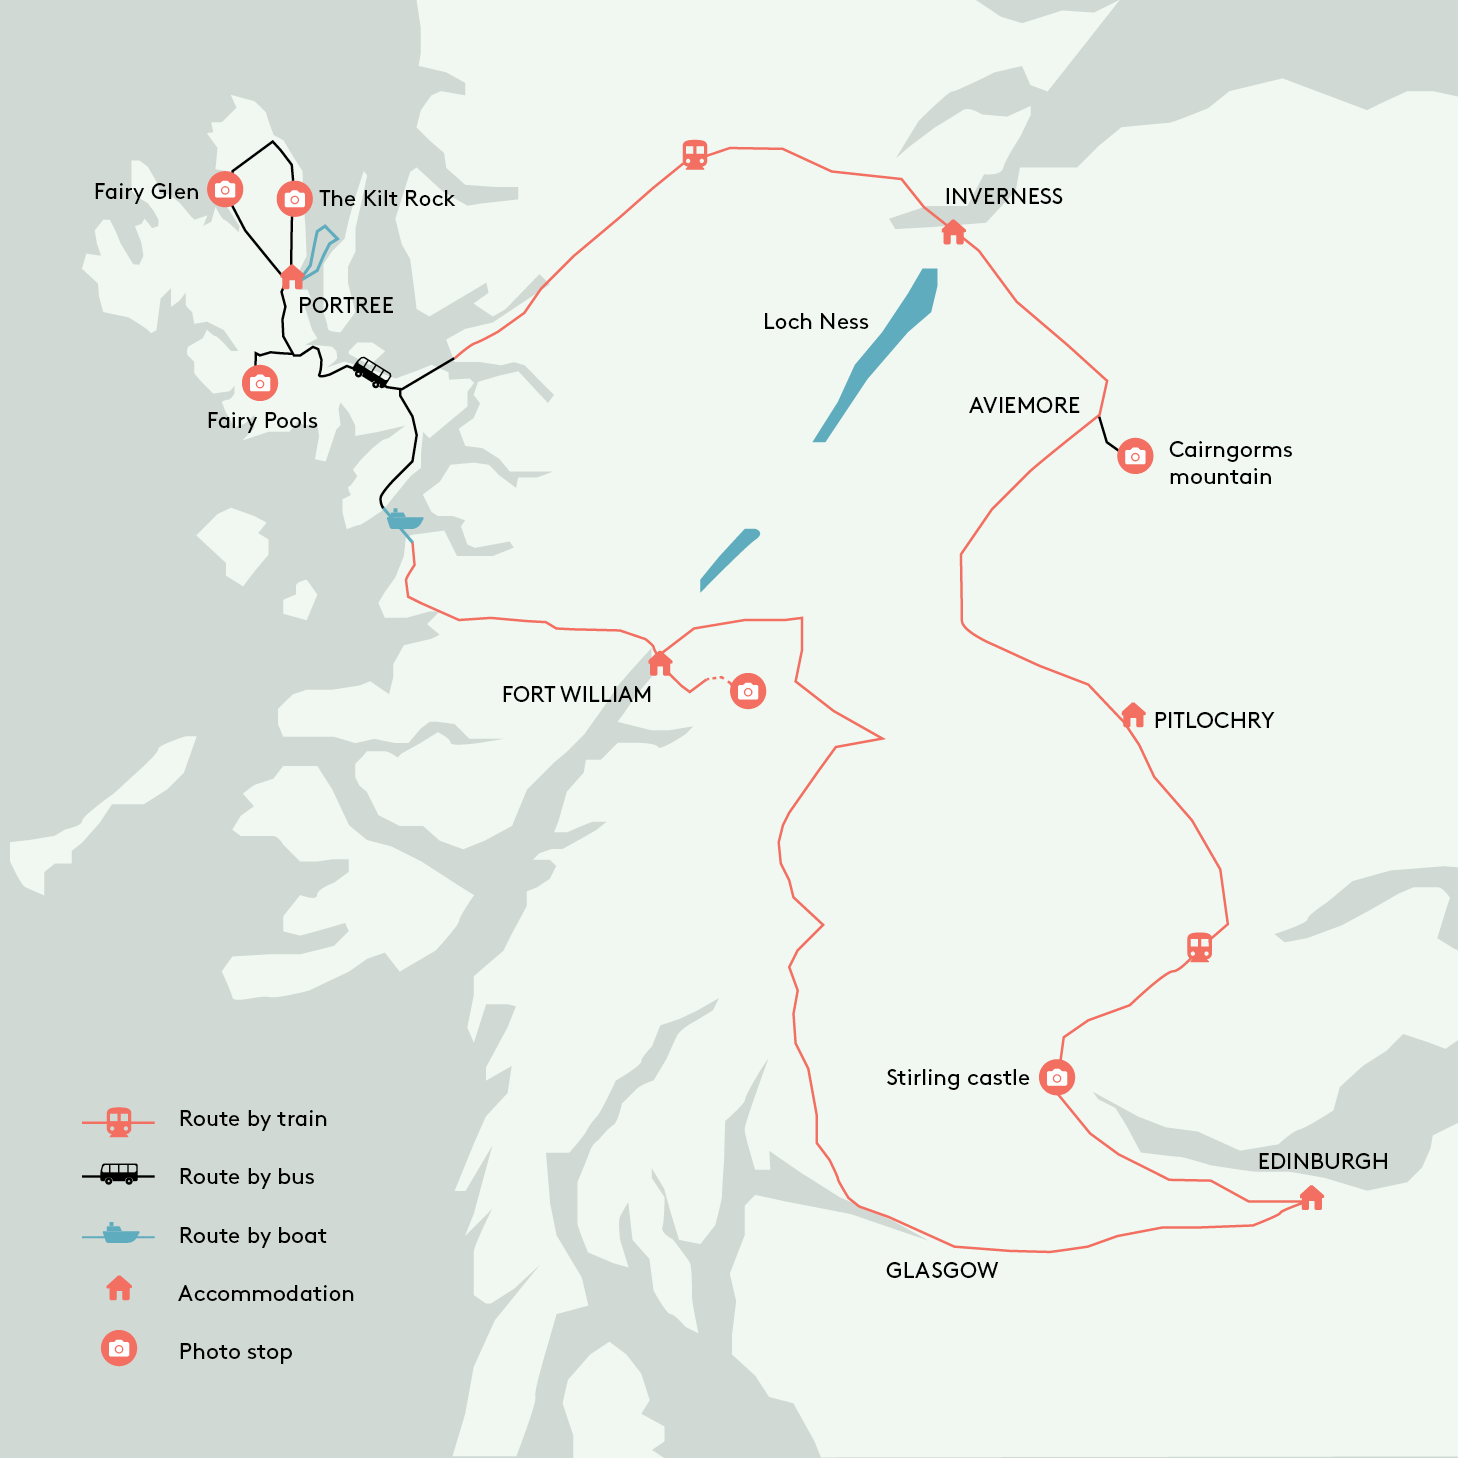 Train Routes In Scotland Map.Scotland And Isle Of Skye By Train A Travel Guide Sarahinthegreen